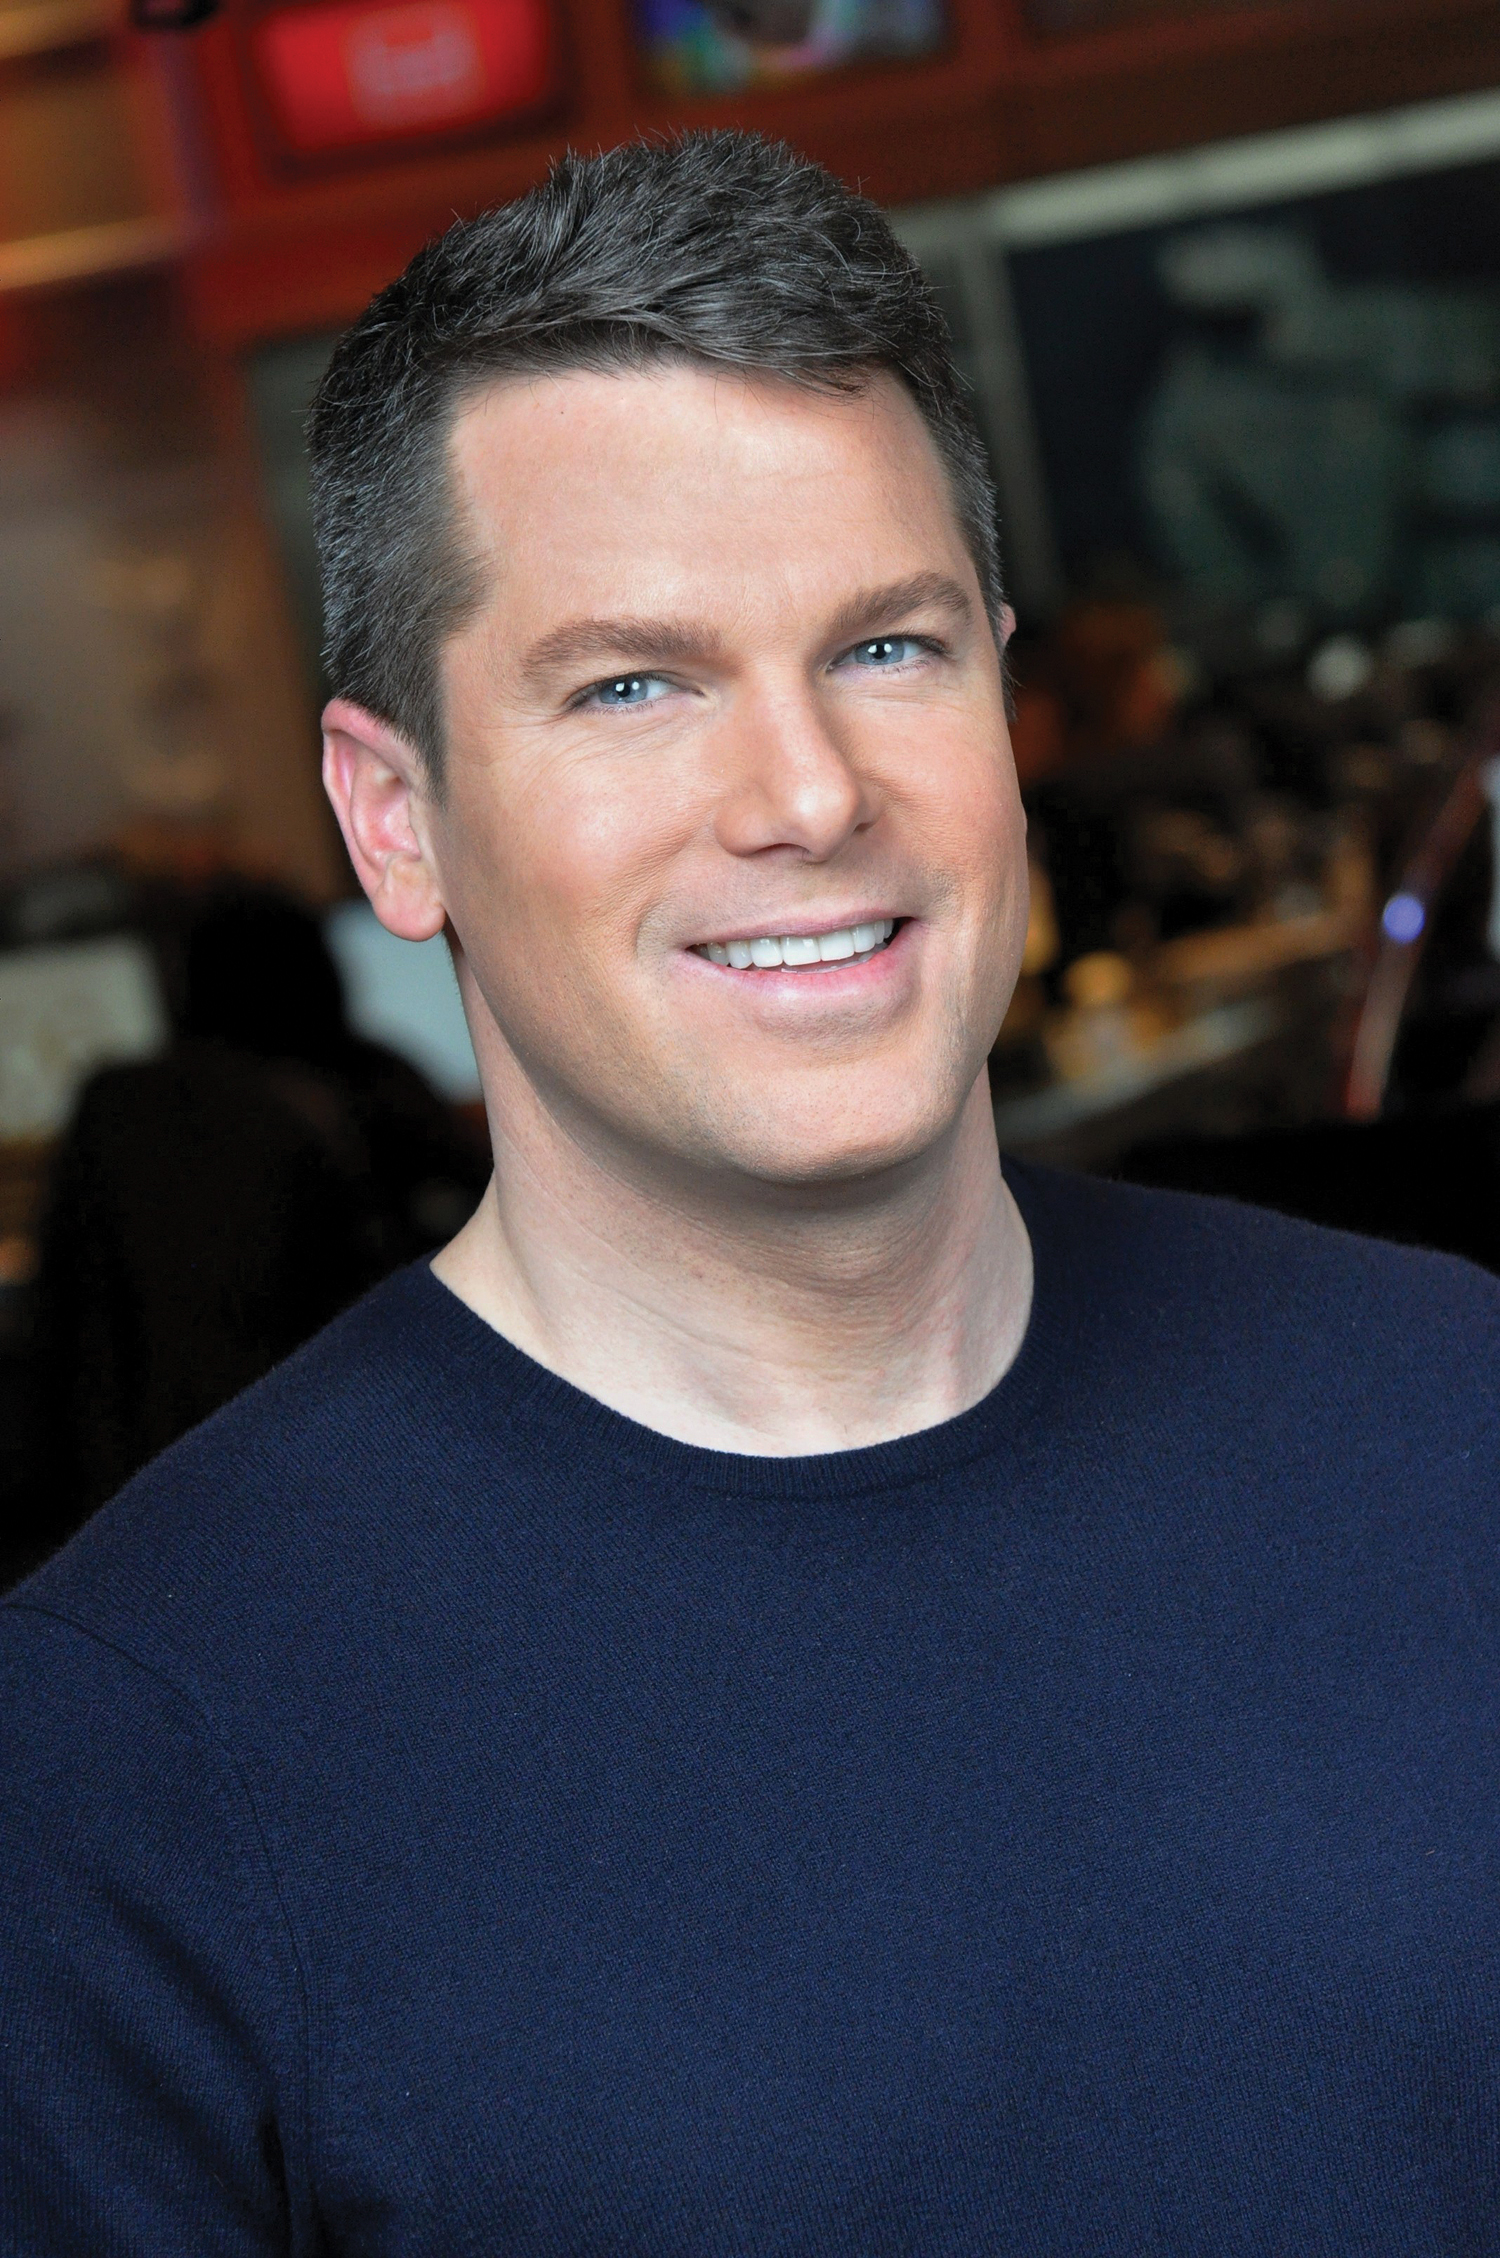 thomas roberts by michael young.jpg